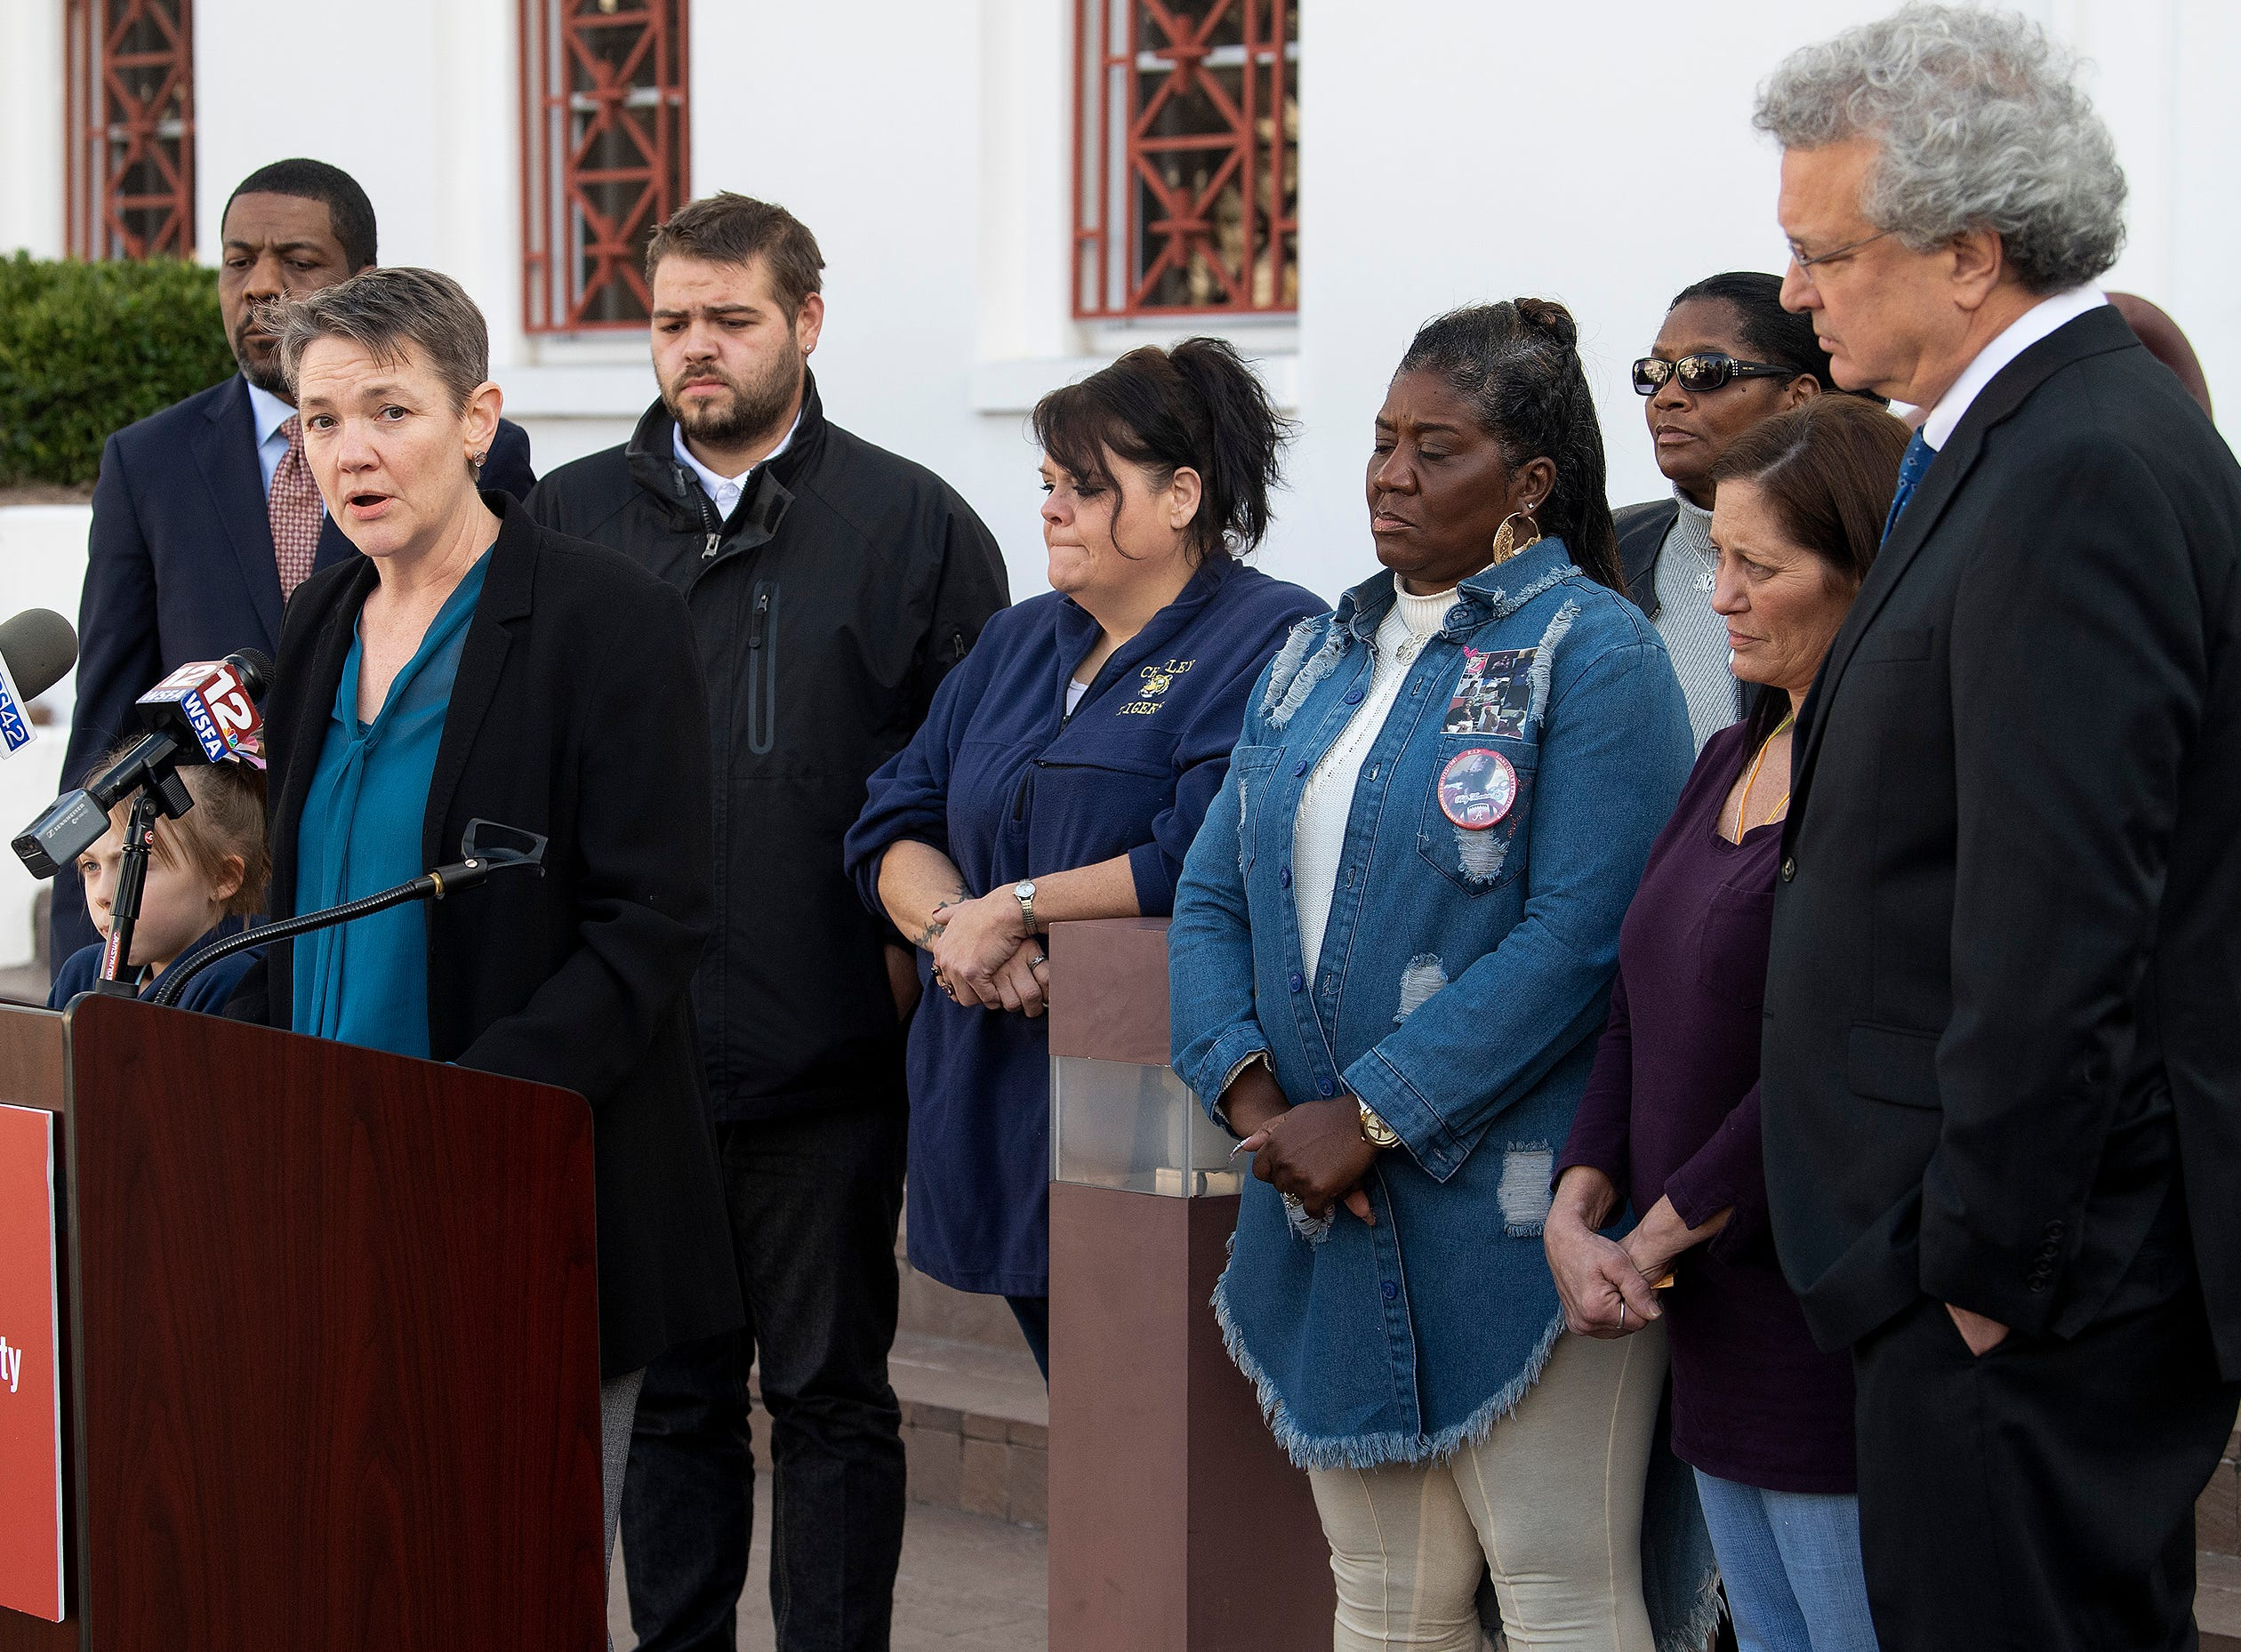 Maria Morris, senior supervising attorney at Southern Poverty Law Center, speaks as the SPLC holds a press conference to update the status of their lawsuit against the Alabama Department of Corrections, dealing with the medical and mental health needs of inmates, on the steps of the Alabama Statehouse in Montgomery, Ala., on Friday February 8, 2019.